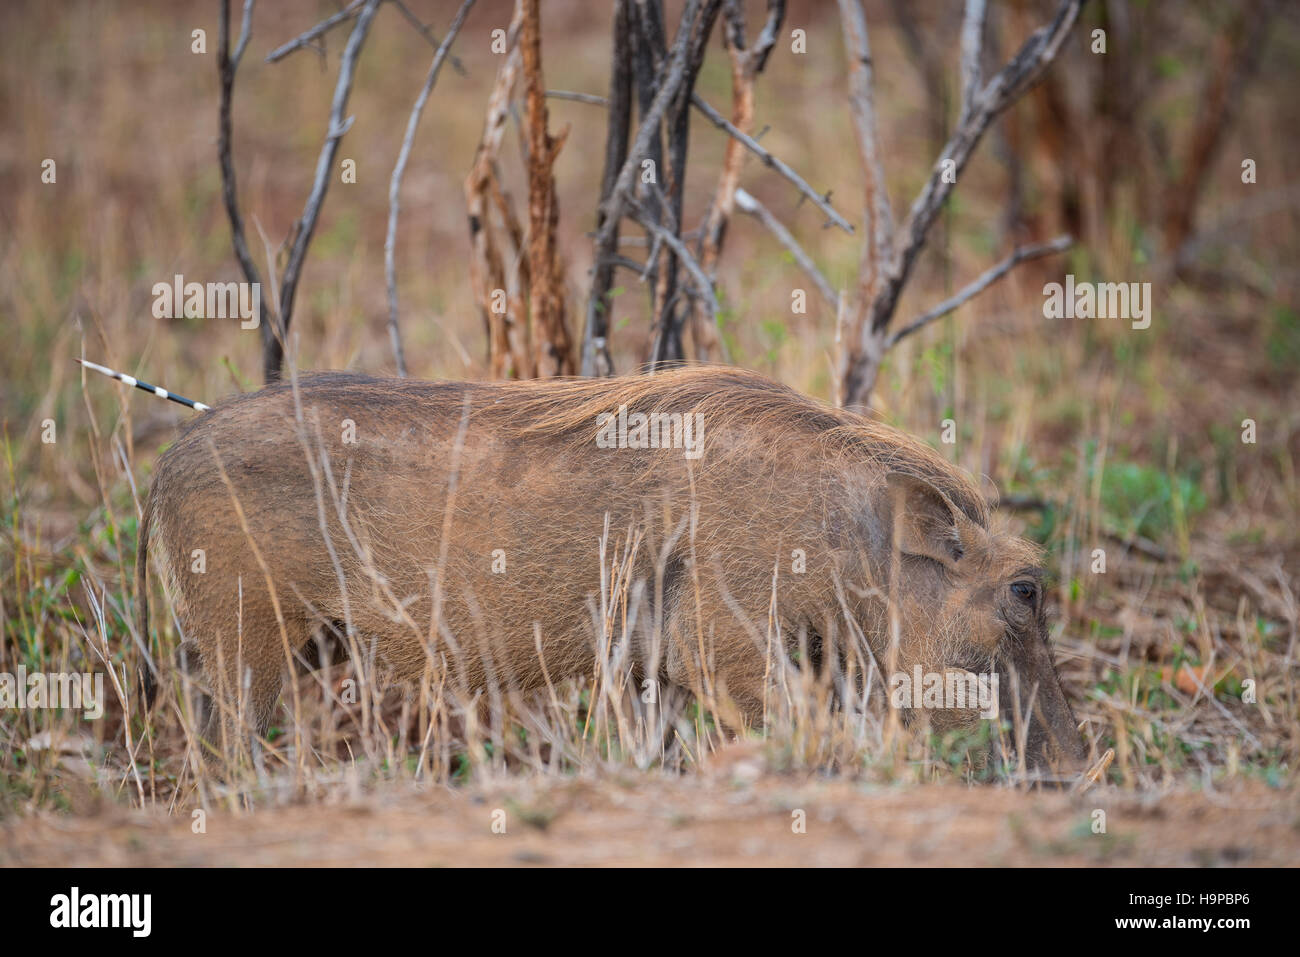 Warthog with a porcupine quill sticking out its rump - Stock Image